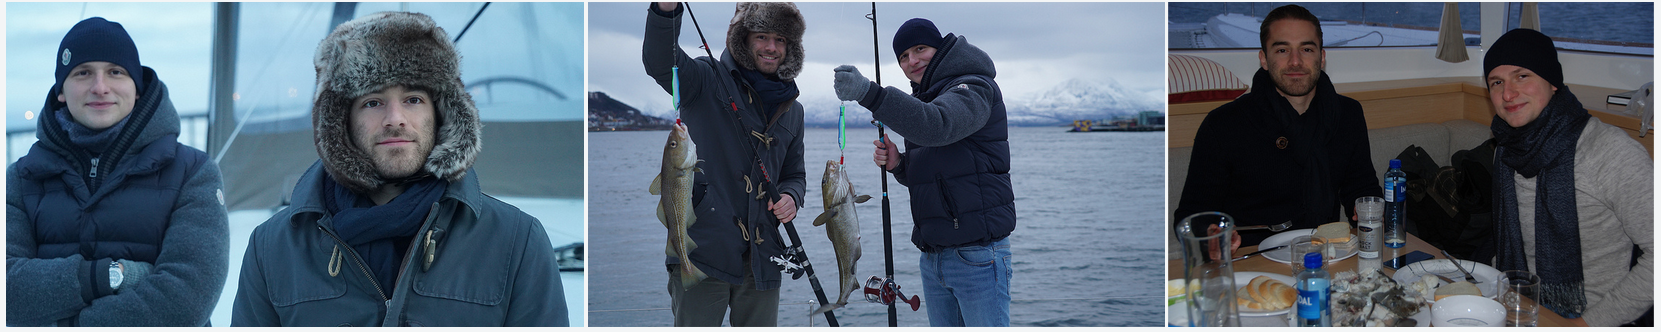 Tromso | Fishing | Arctic Princess